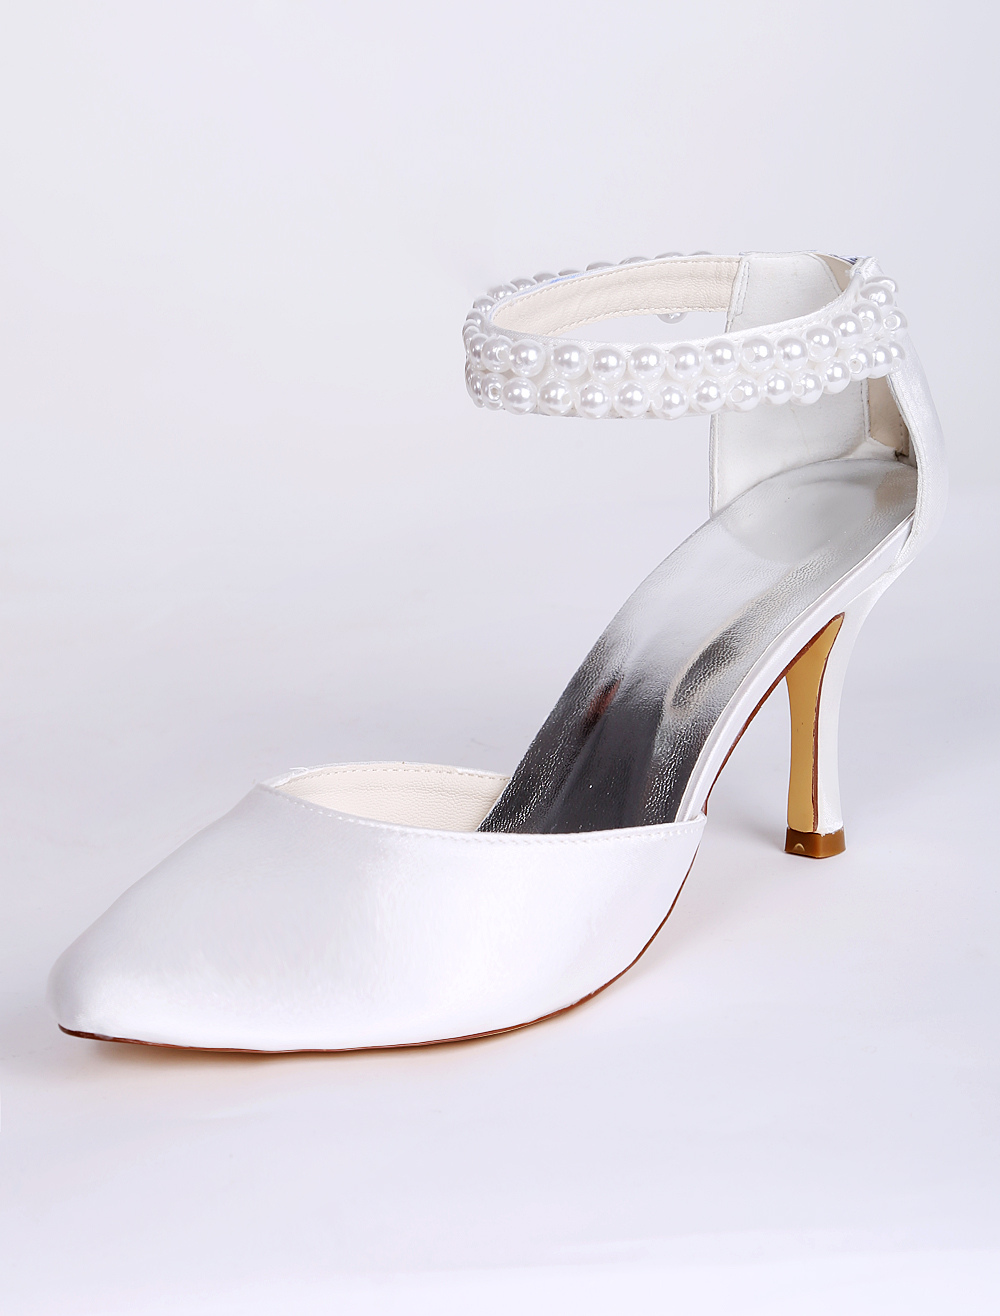 69745a51baa White Wedding Shoes Satin Pointed Toe Pearls Detail Ankle Strap Bridal Shoes  Satin High Heels- ...